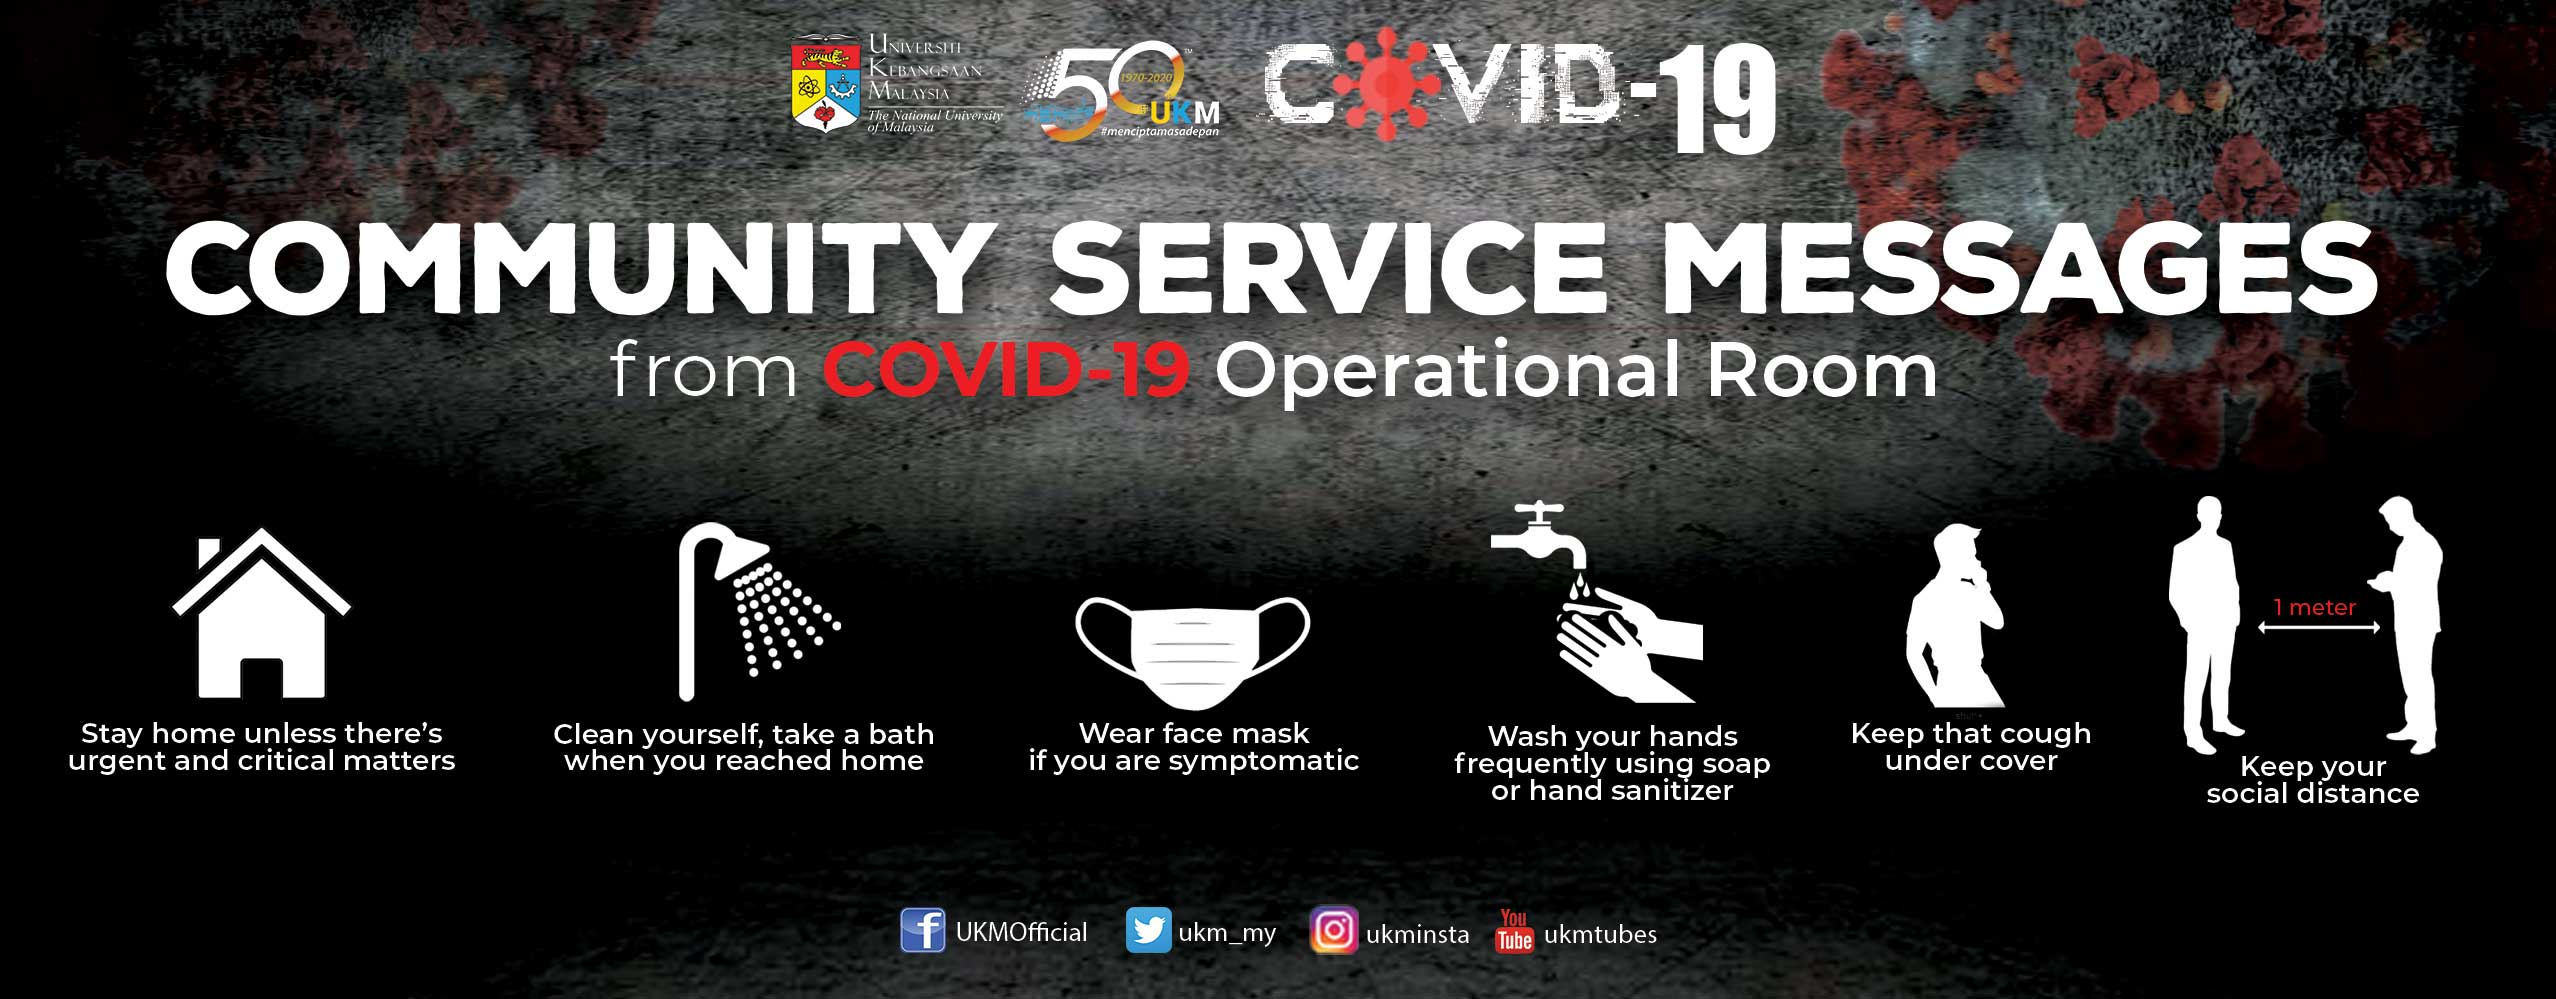 COVID-19 Message from UKM